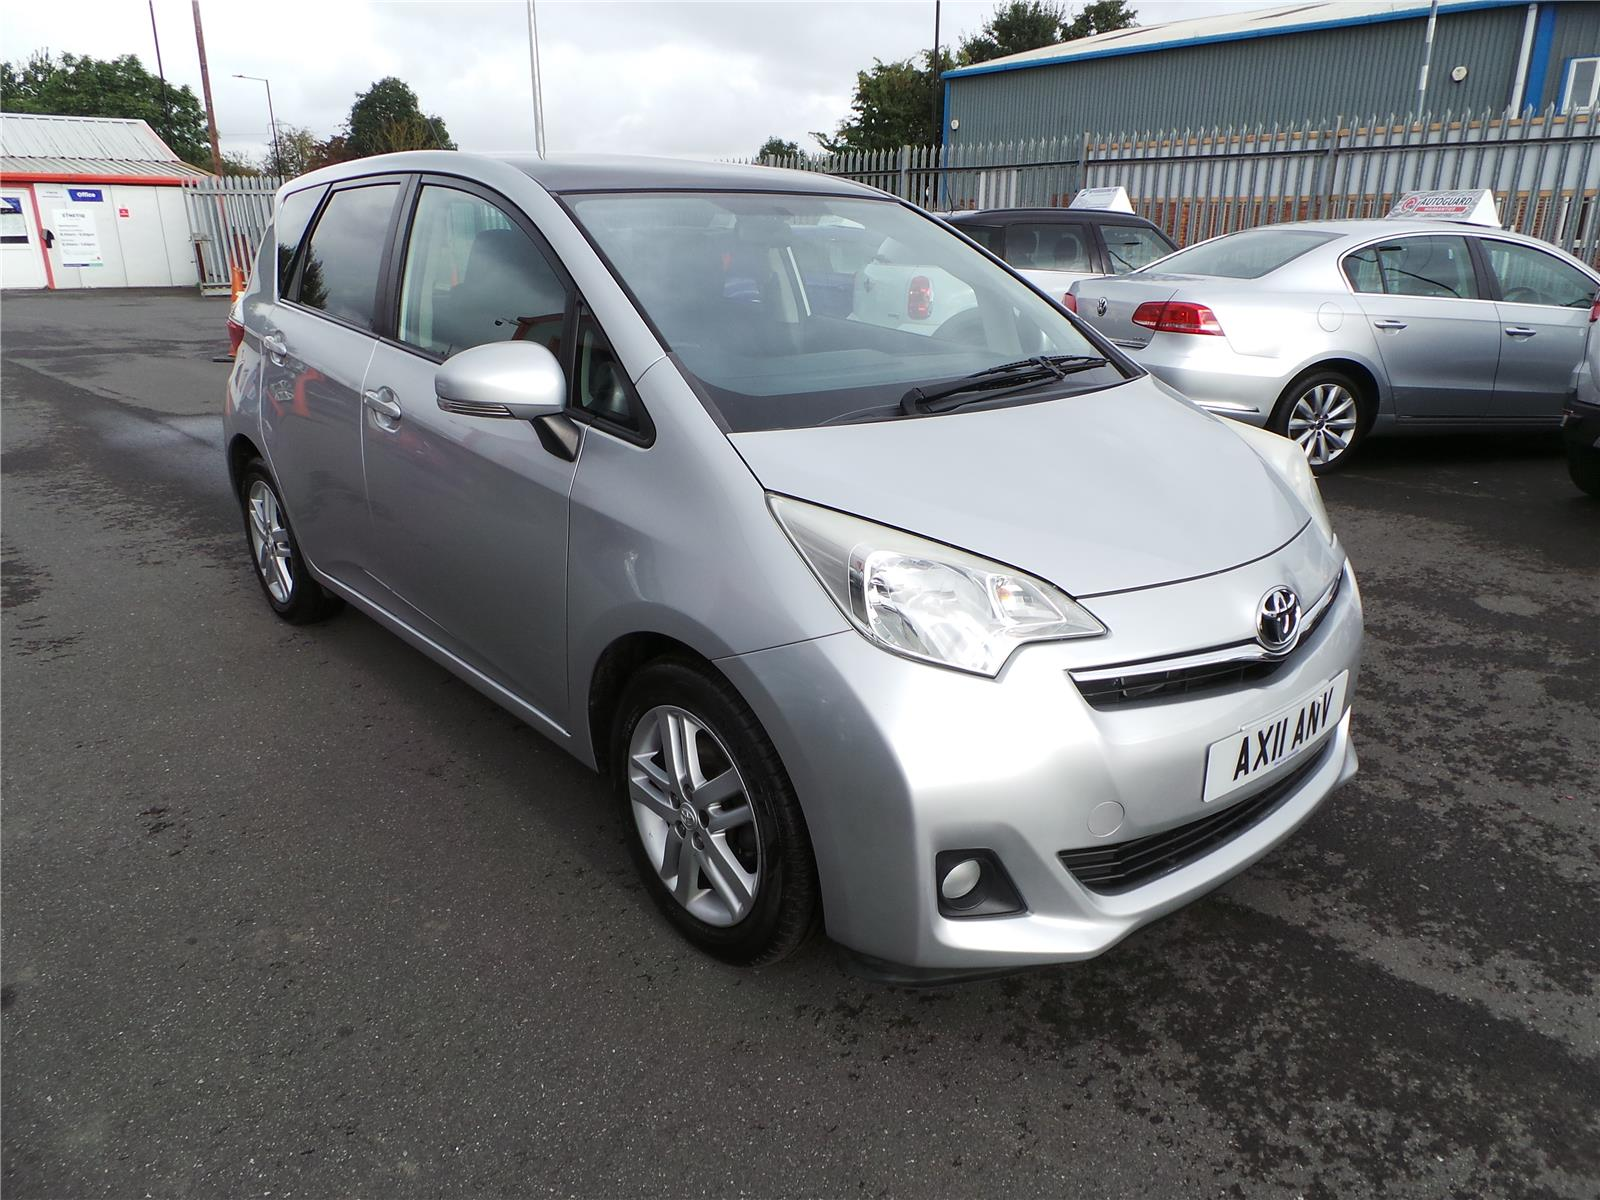 2011 TOYOTA VERSO-S T Spirit 1329 PETROL MANUAL 6 Speed 5 DOOR MPV